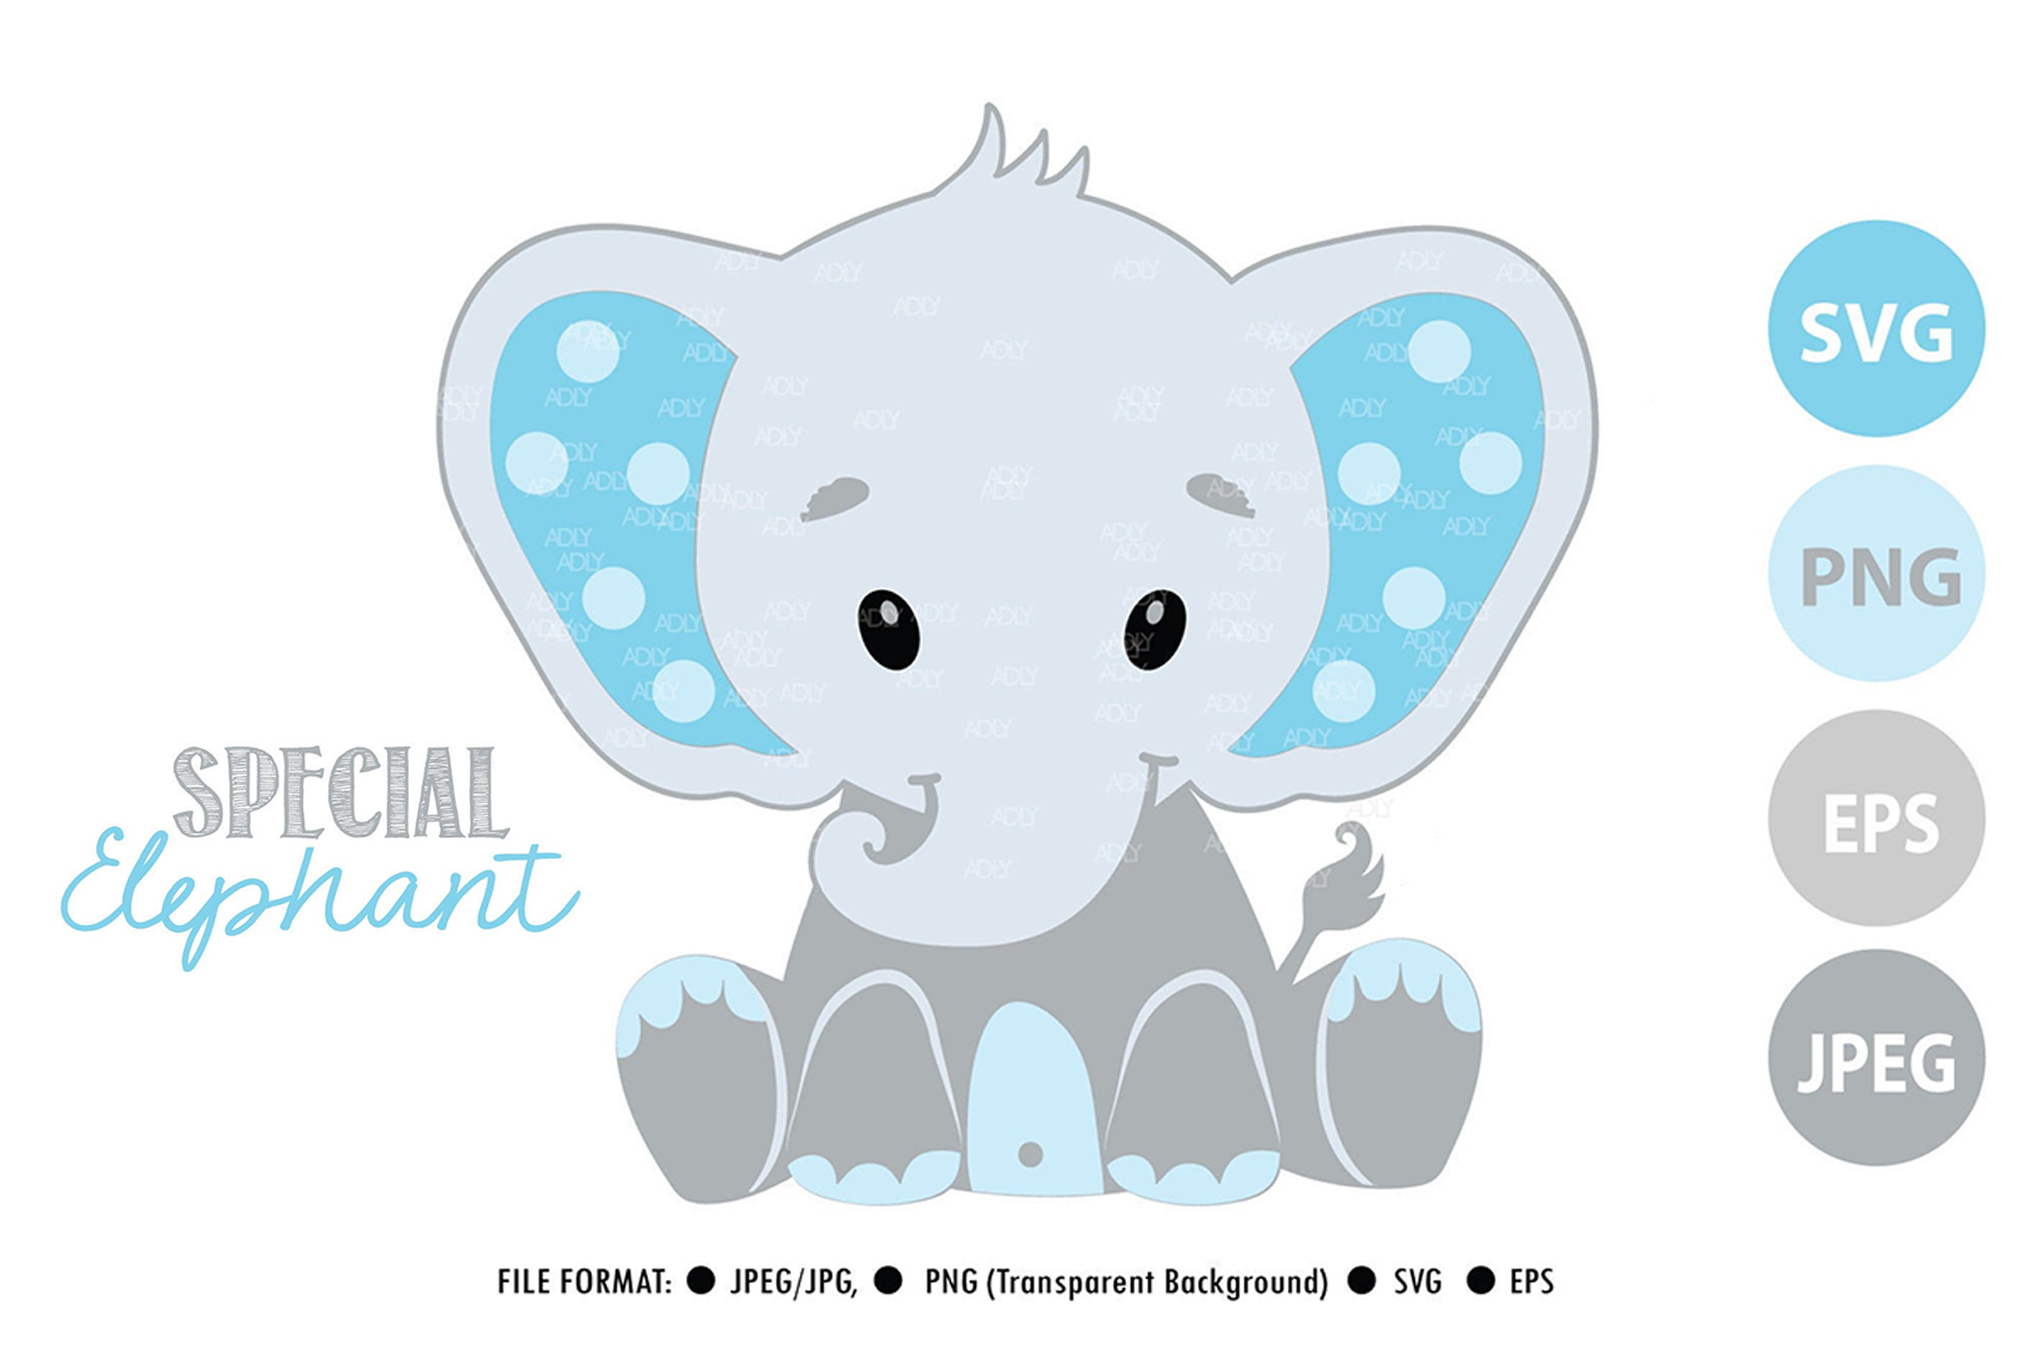 Download Free Cute Baby Elephant Graphic By Adlydigital Creative Fabrica for Cricut Explore, Silhouette and other cutting machines.